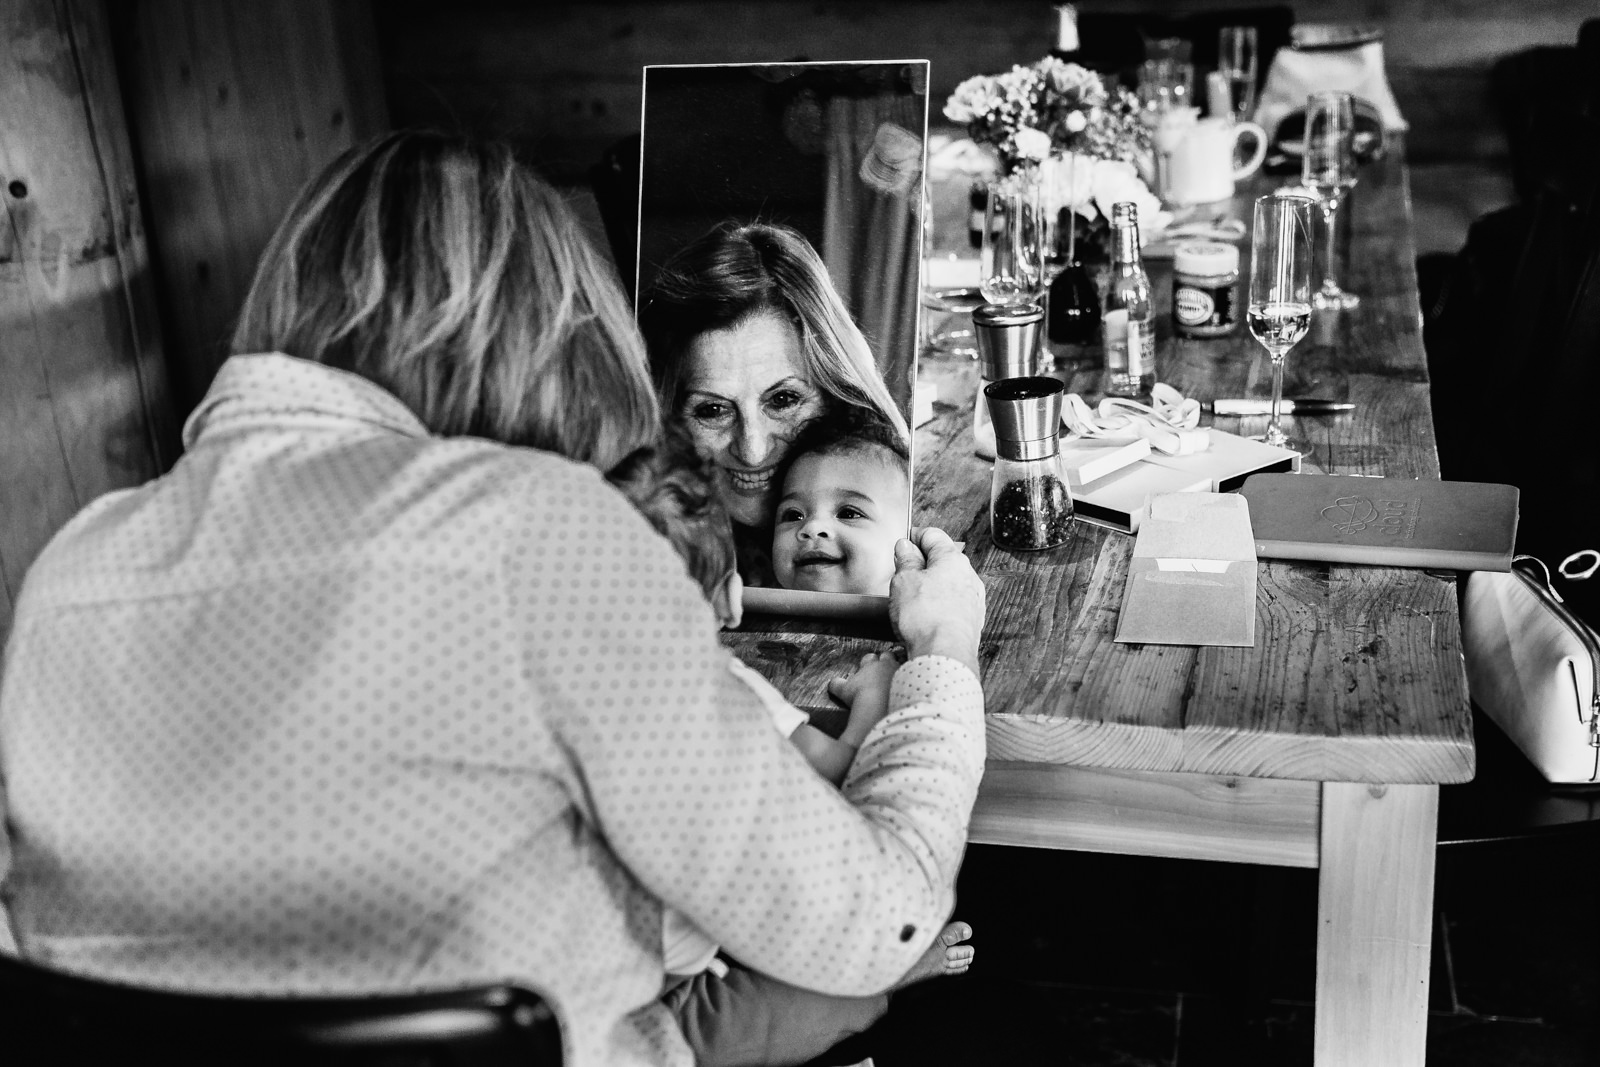 Little girl and grandma looking in the mirror